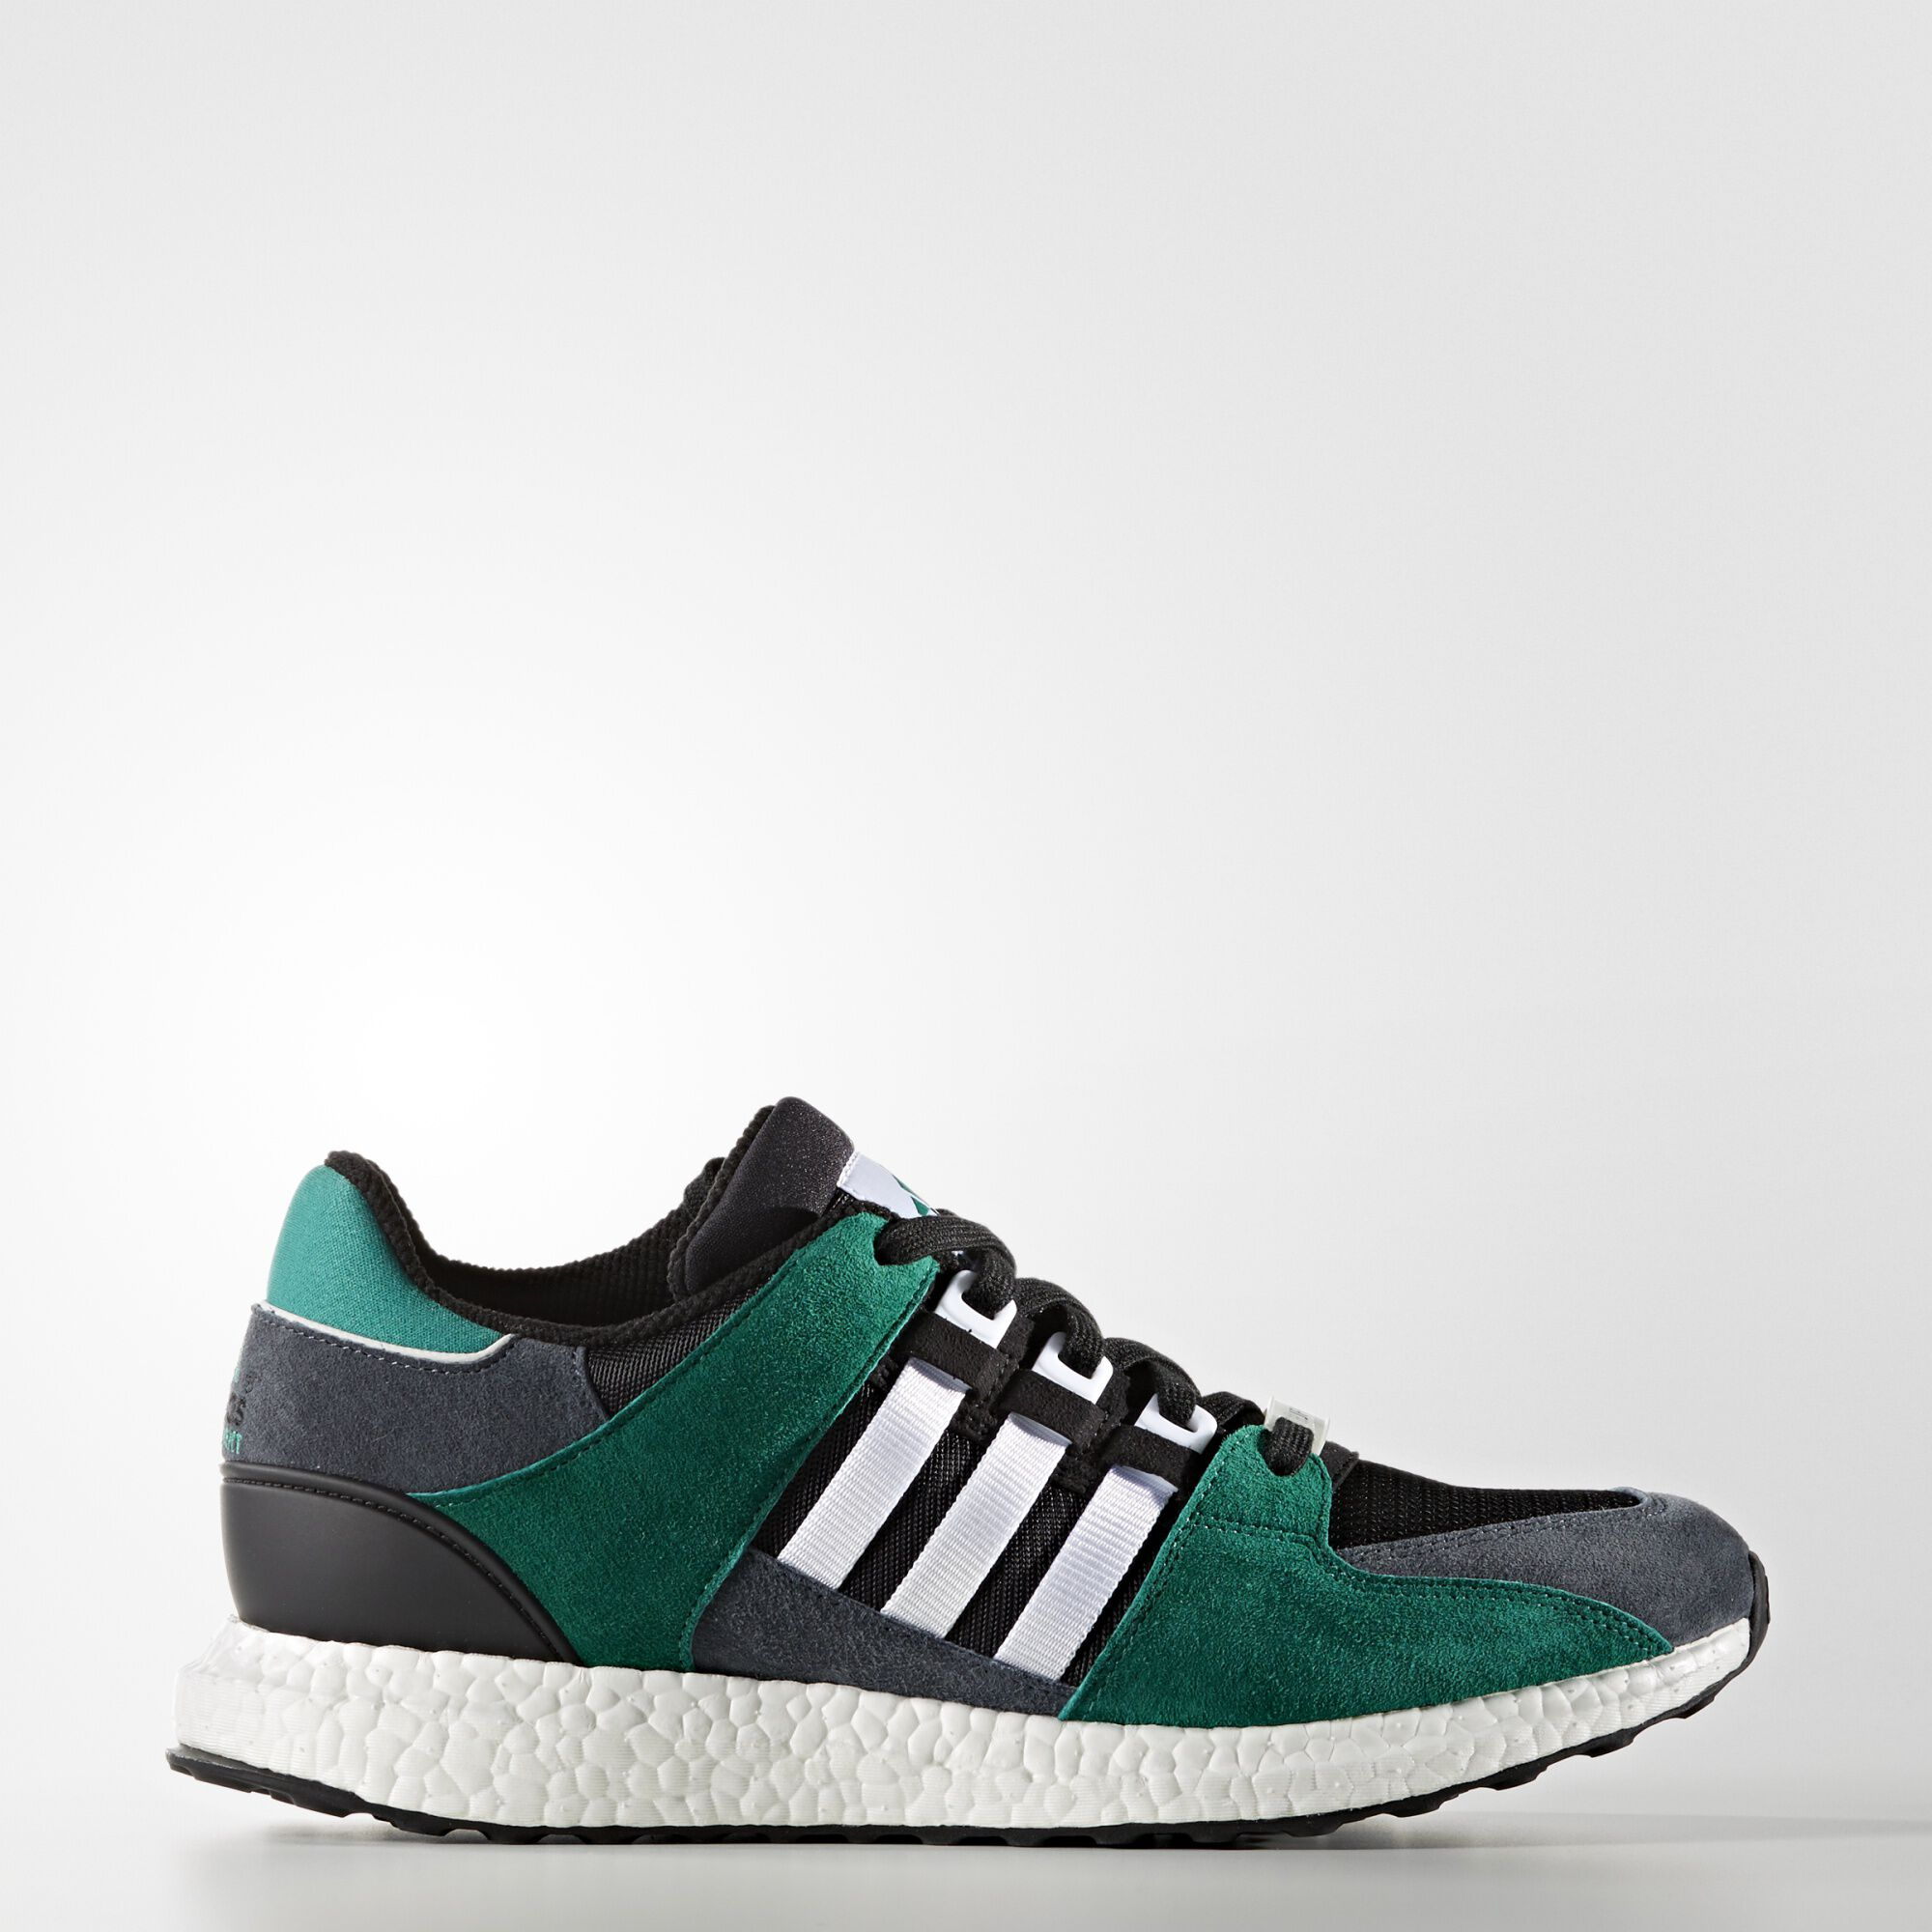 adidas EQT Support Ultra Shoes Black adidas MLT